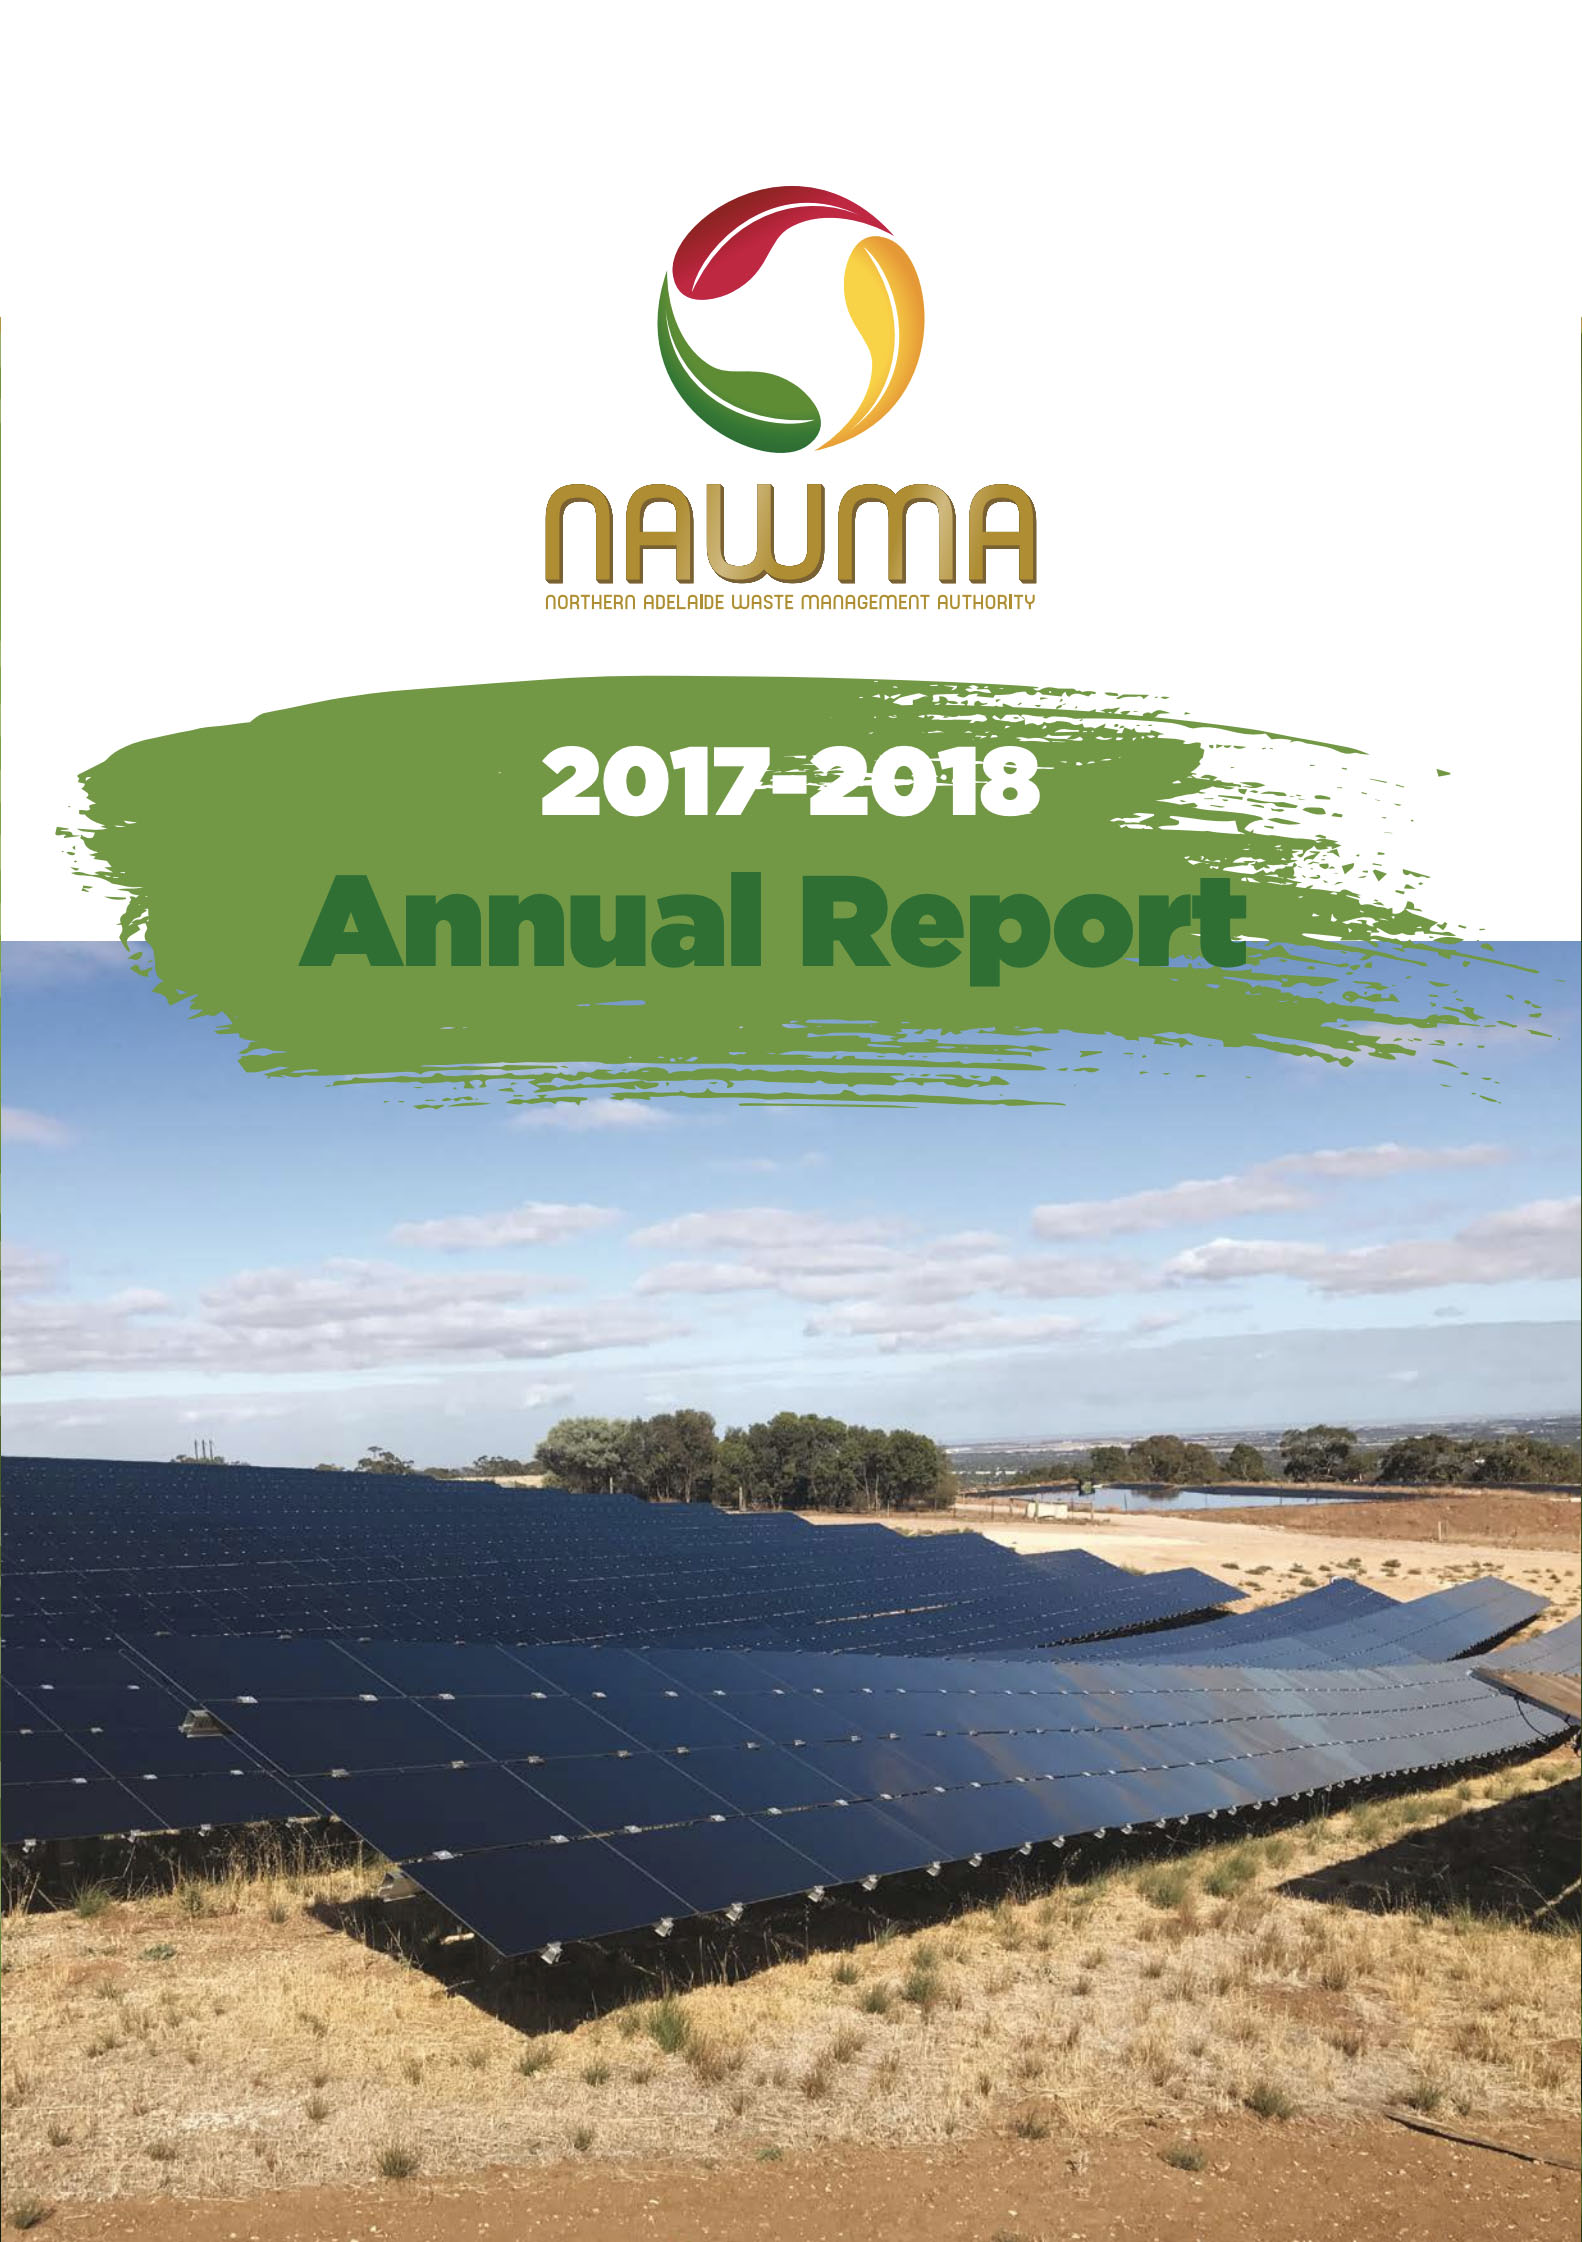 NAWMA Annual Report 2017-2018